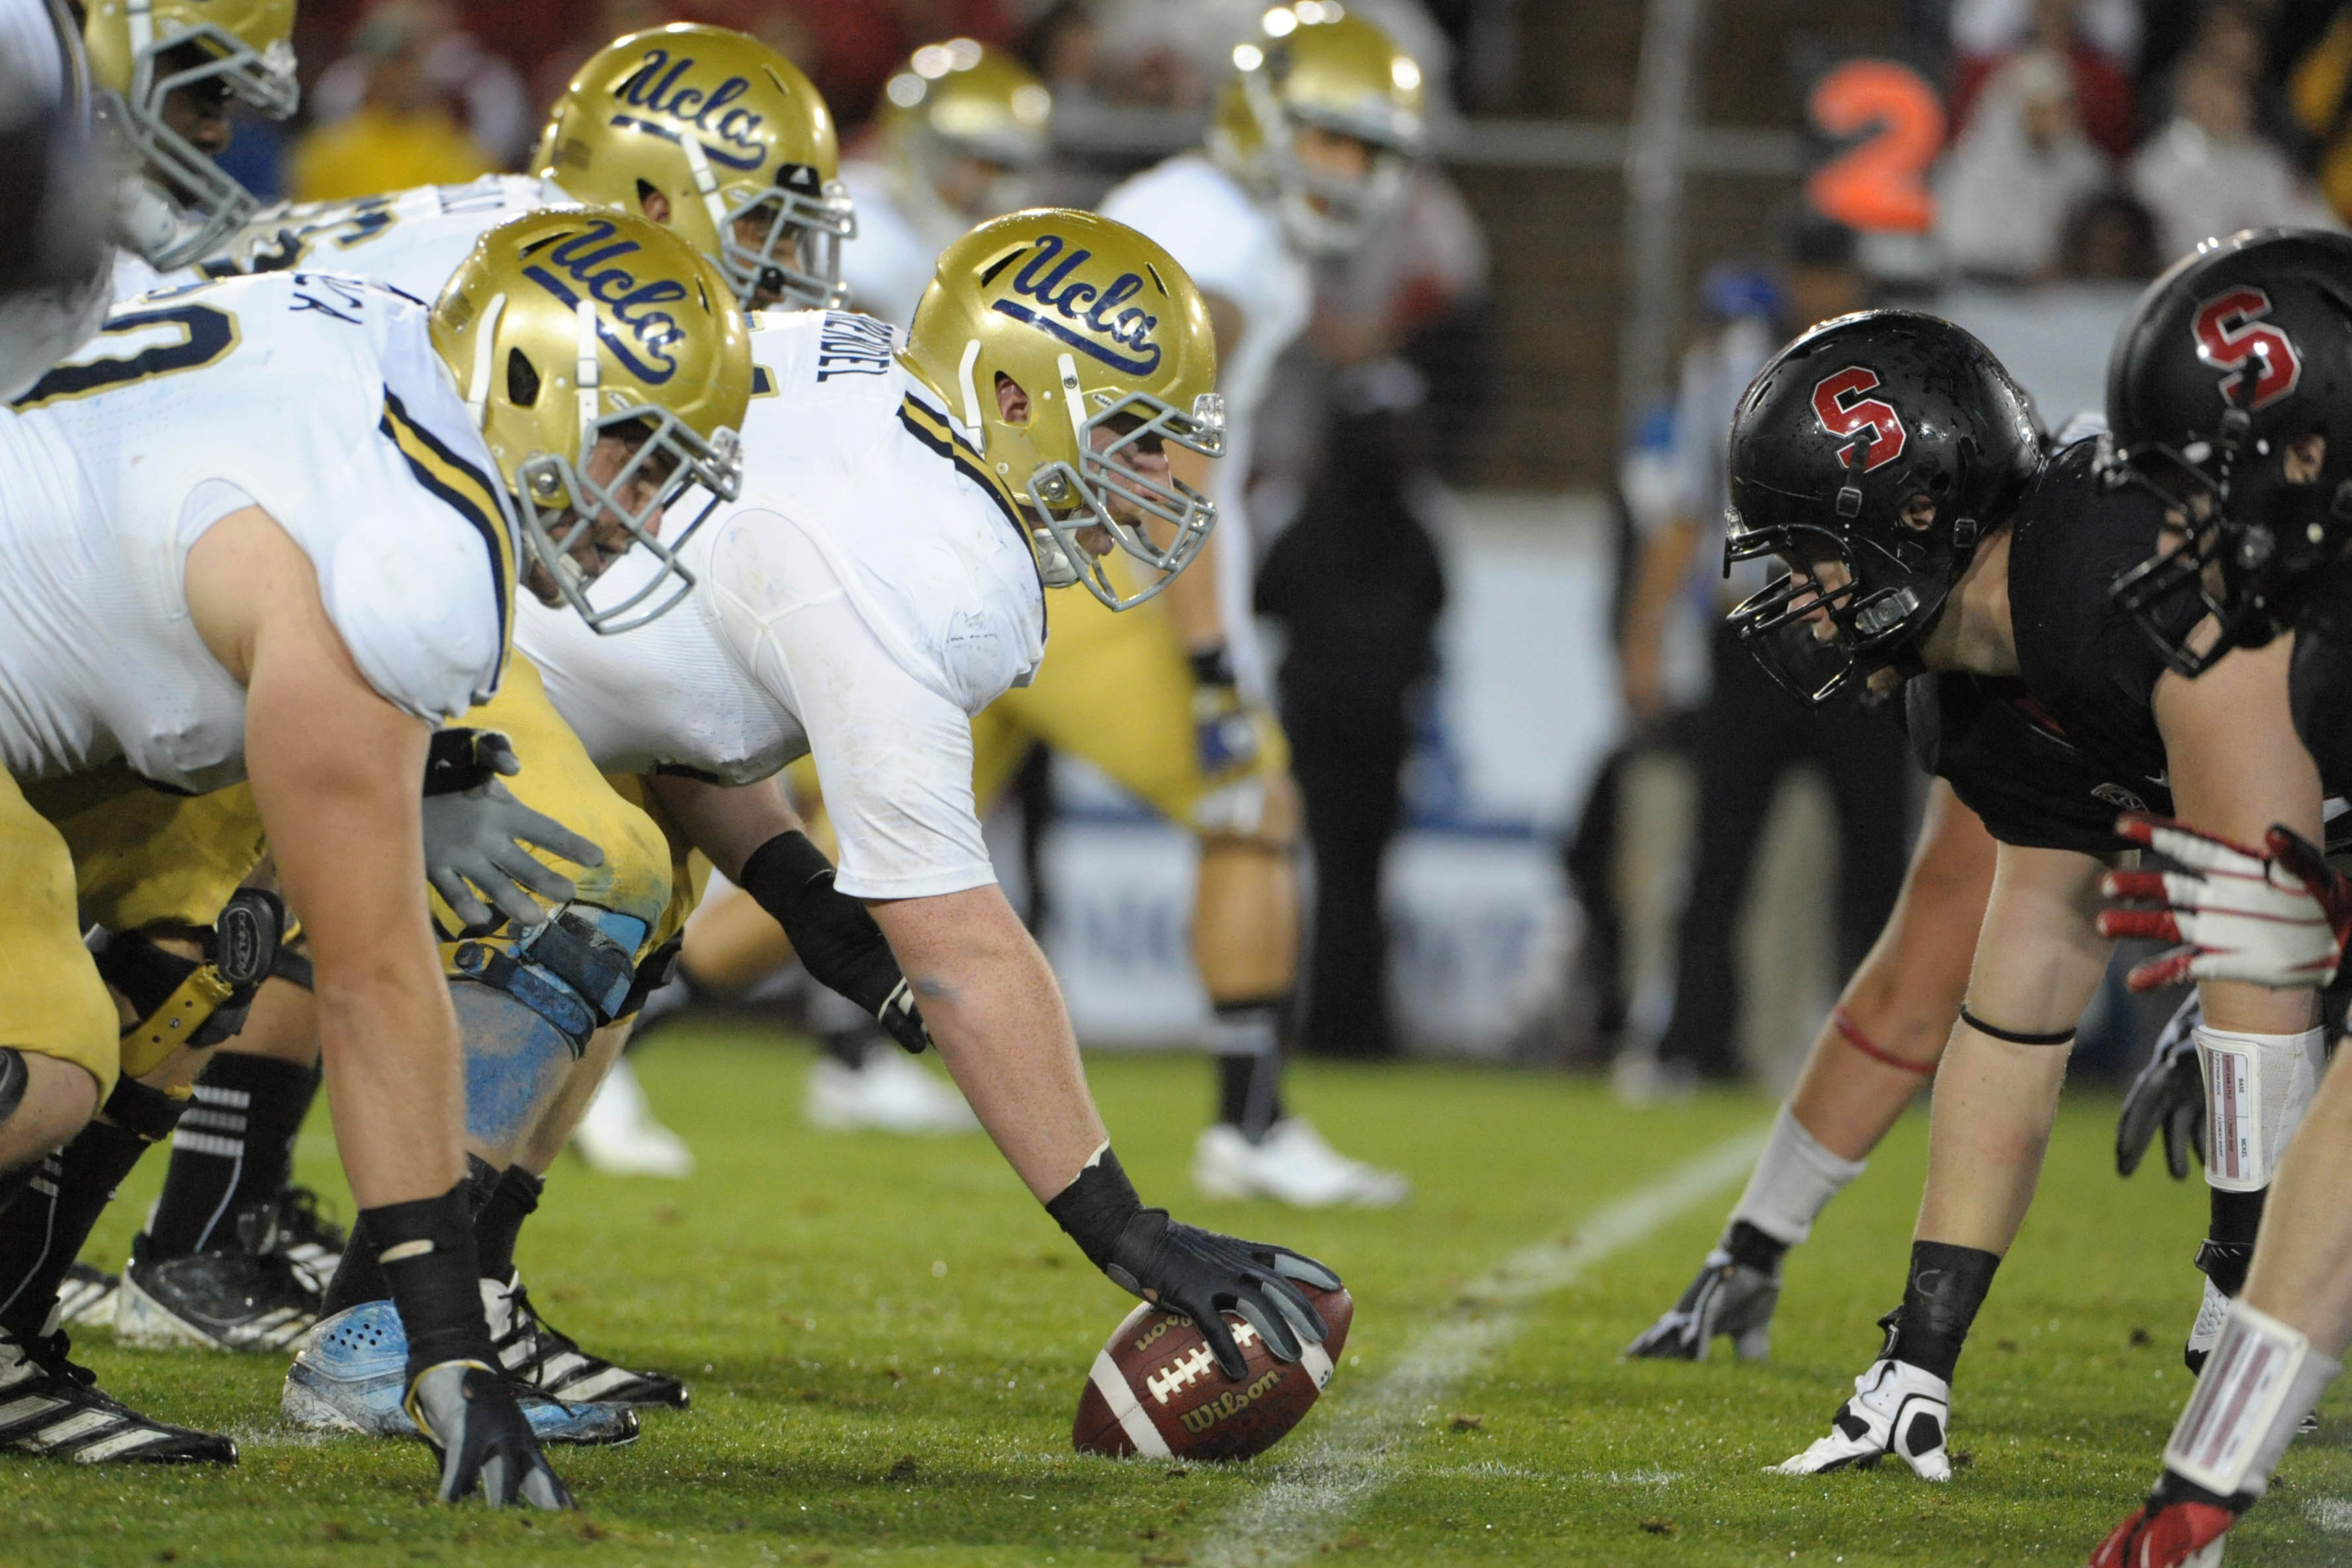 Center Jake Brendel's status for Saturday is still up in the air